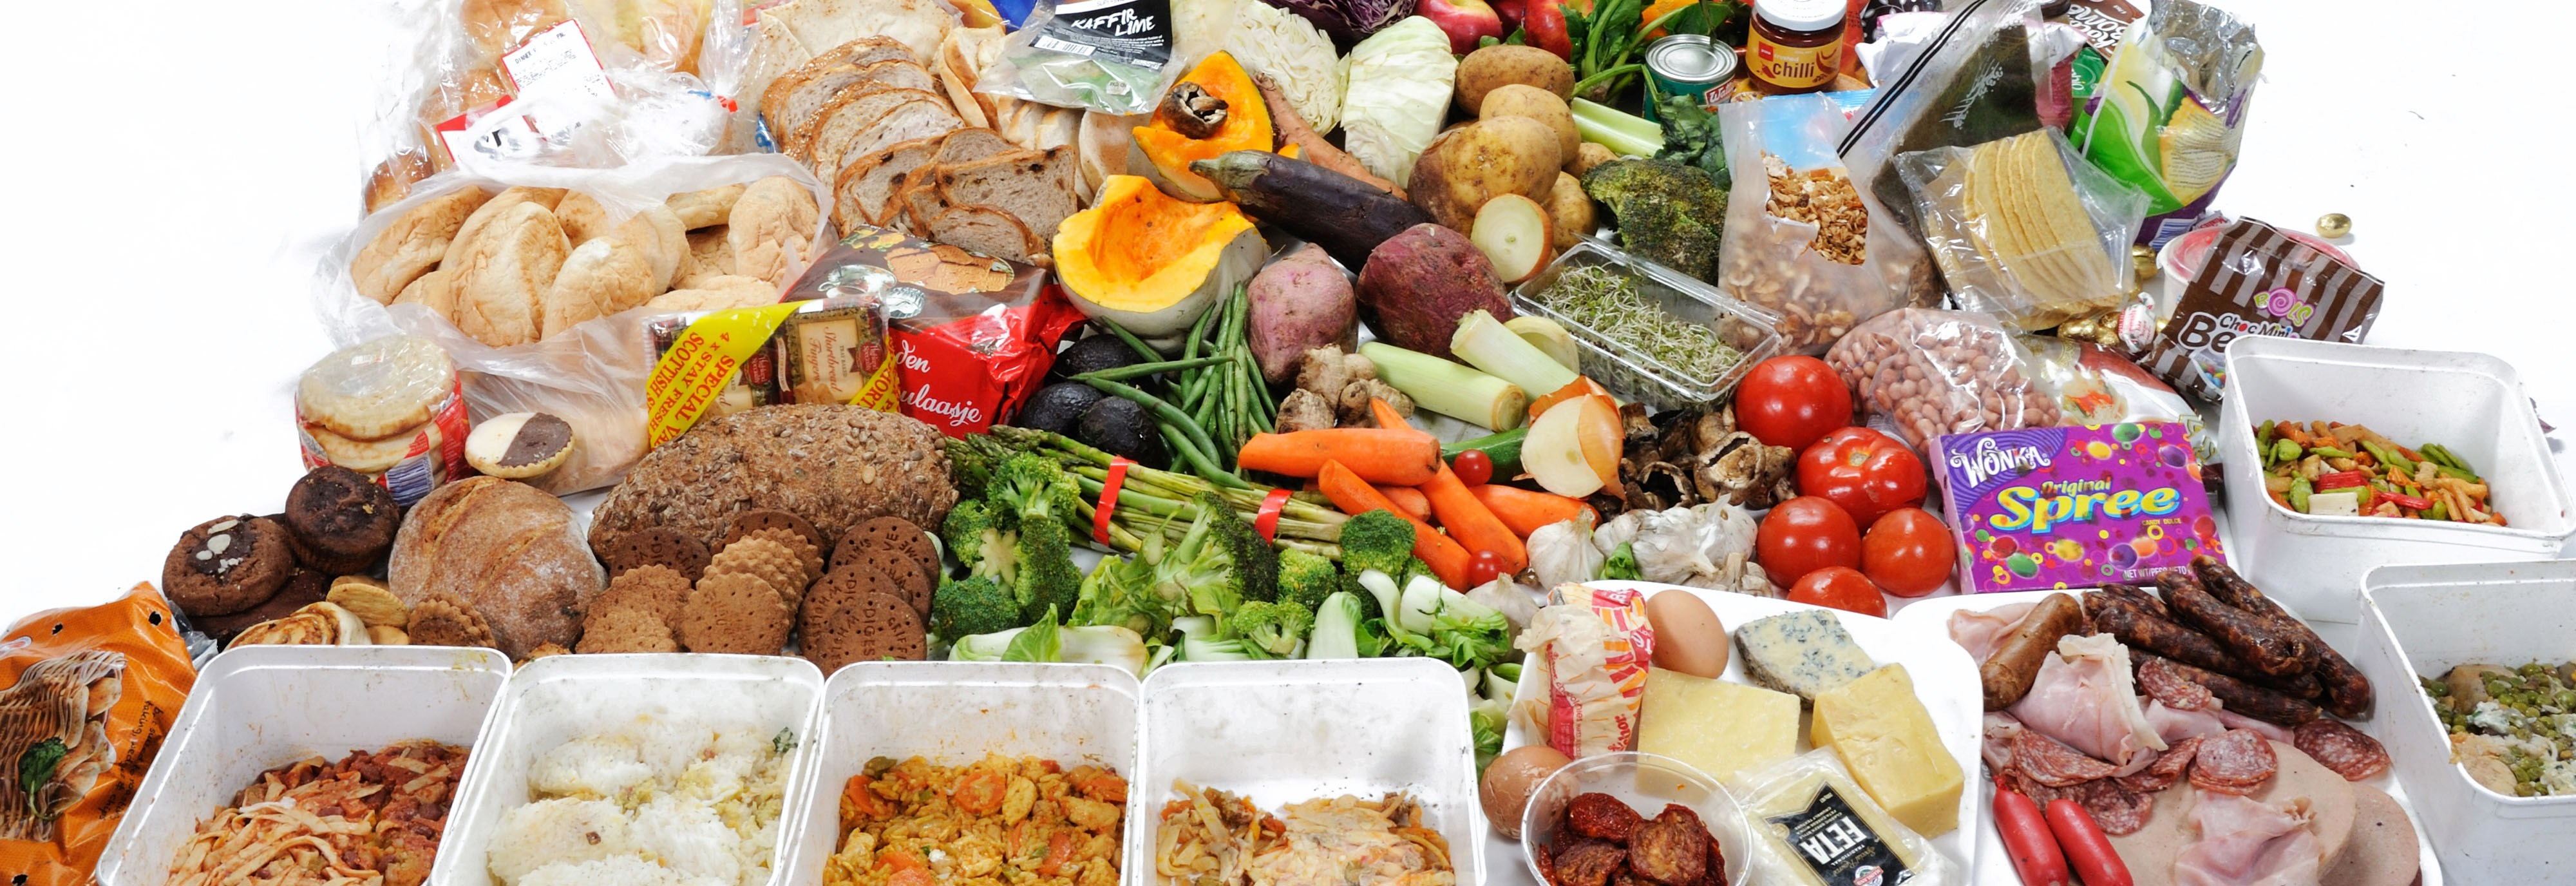 Food waste. Photo: Wikimedia commons